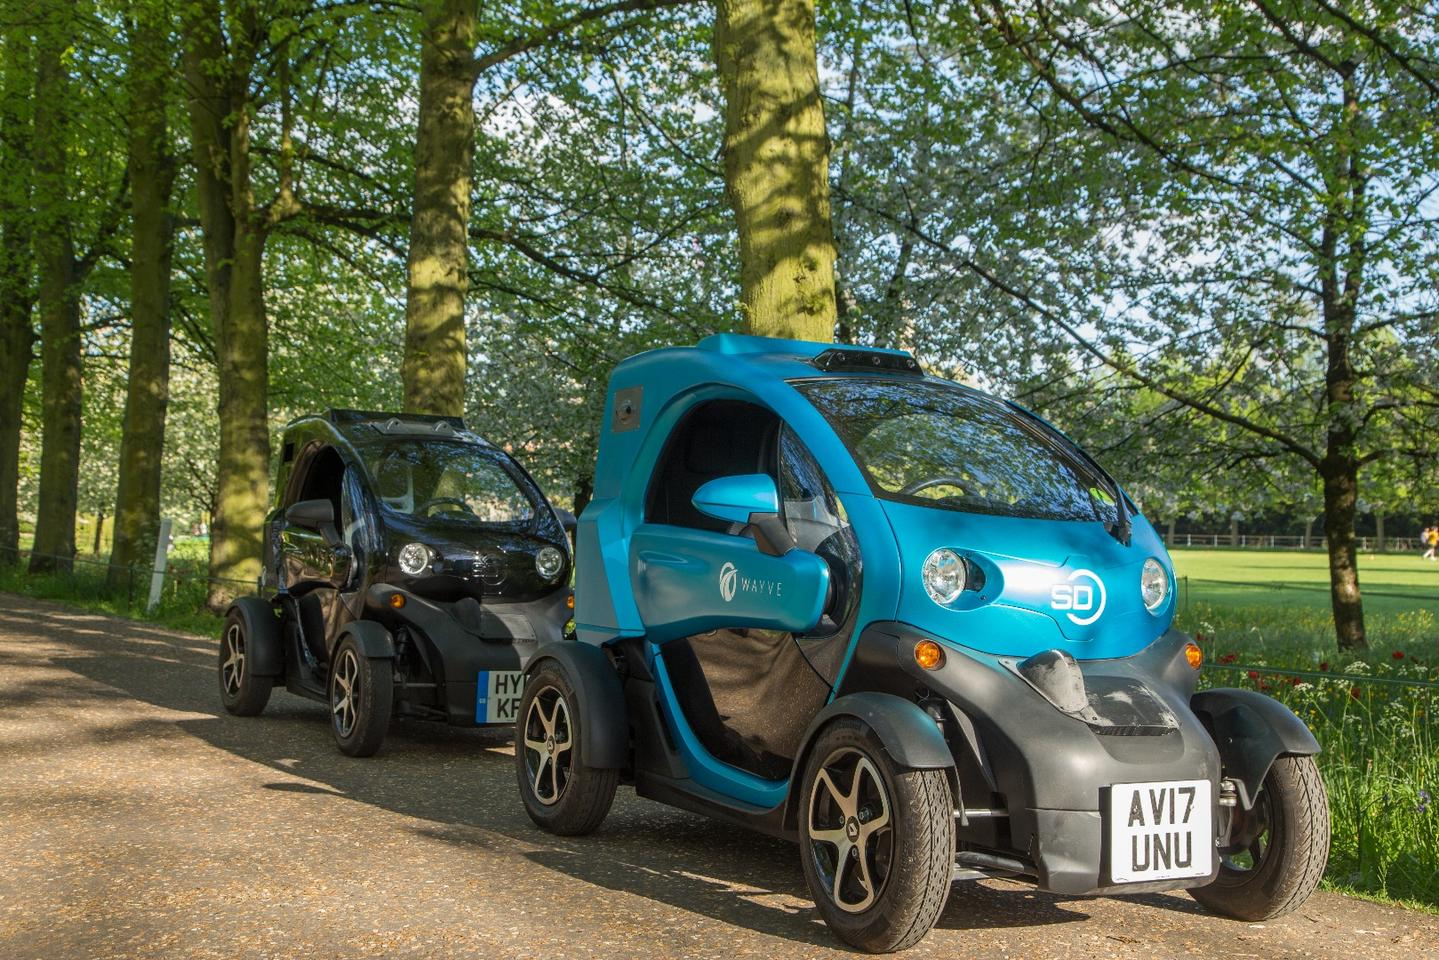 A pair of Renault Twizys, kitted out as self-driving test beds